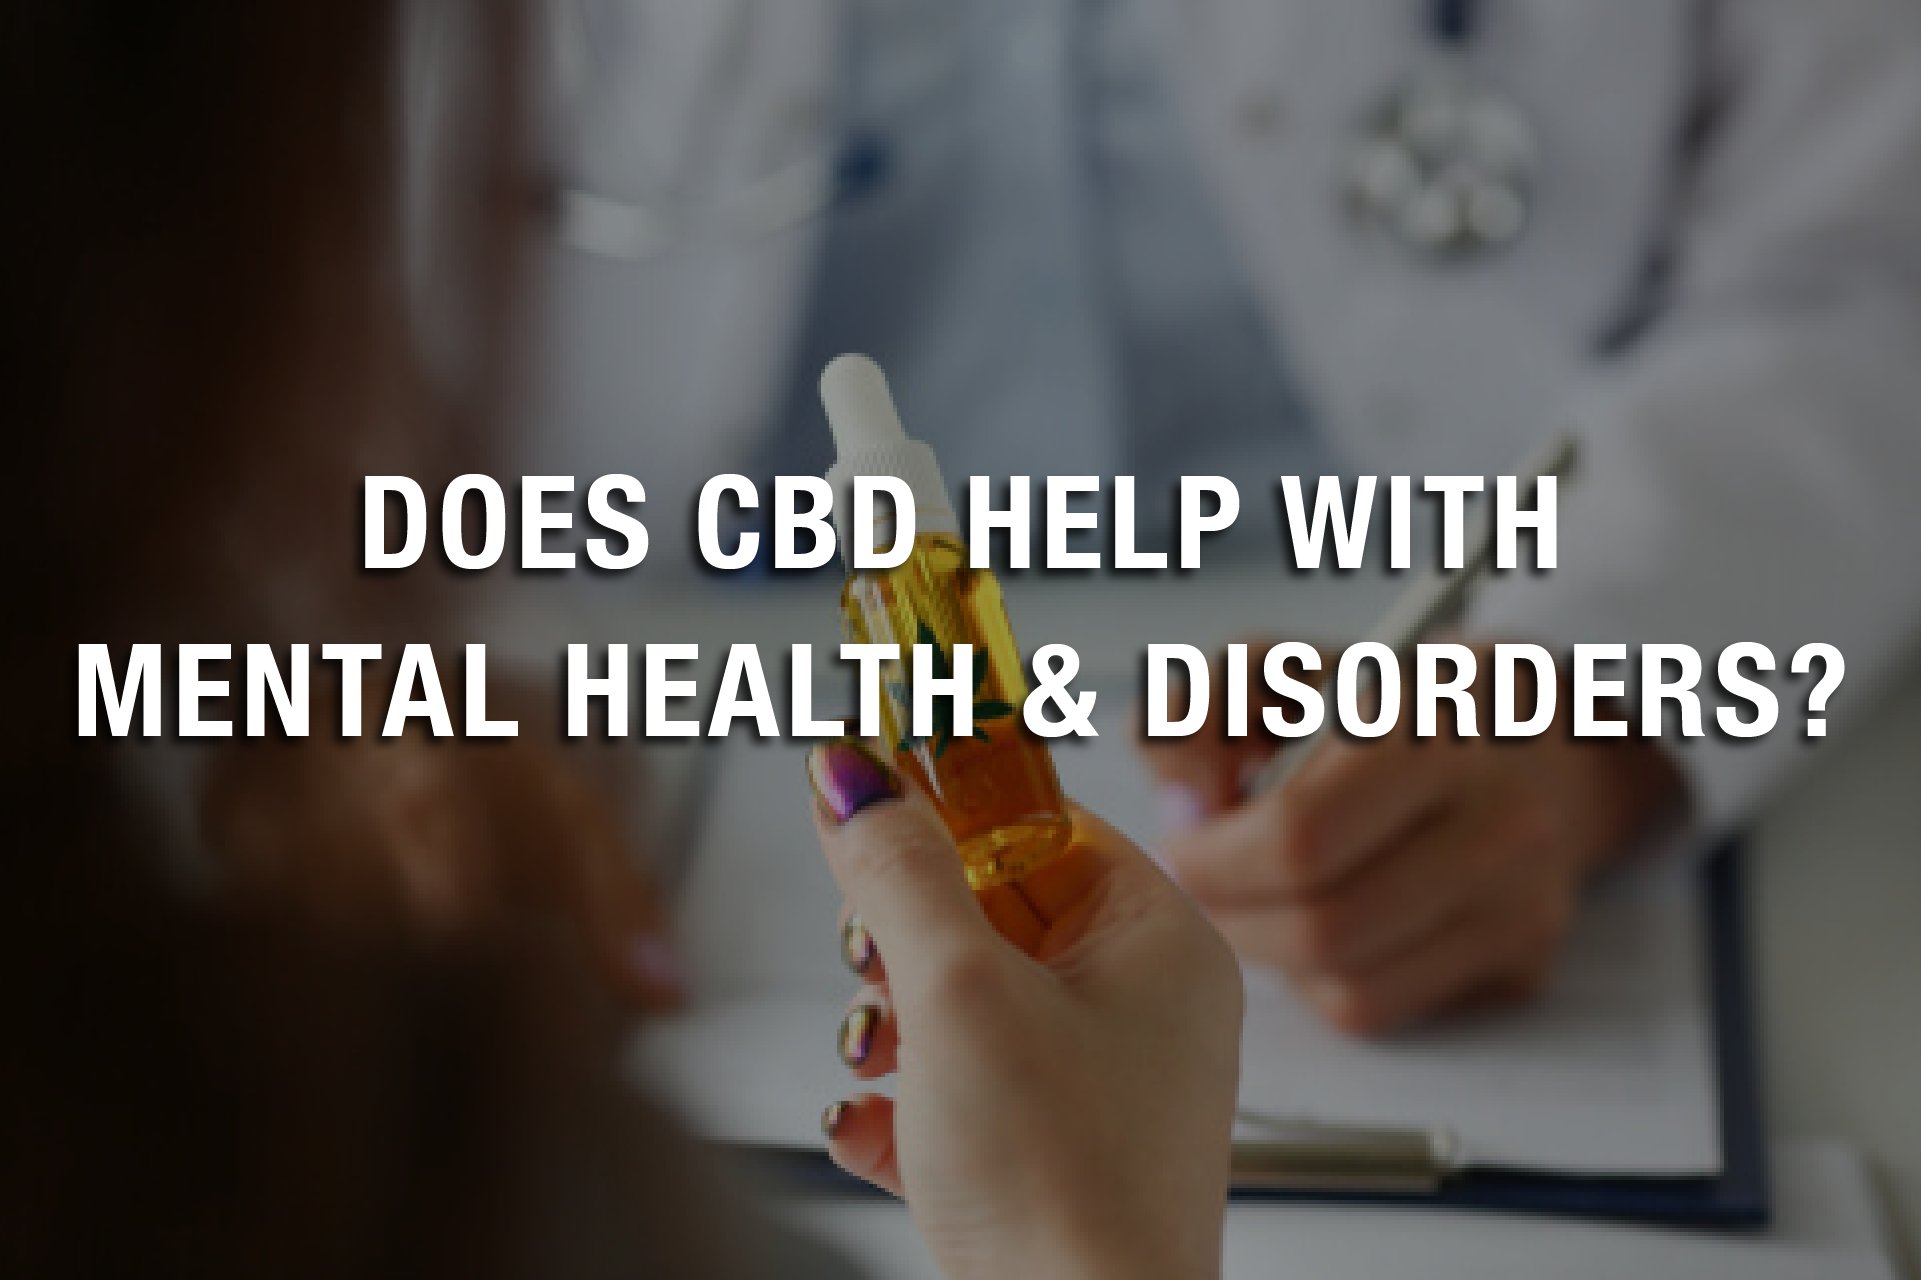 Does CBD Help With Mental Health Disorders?